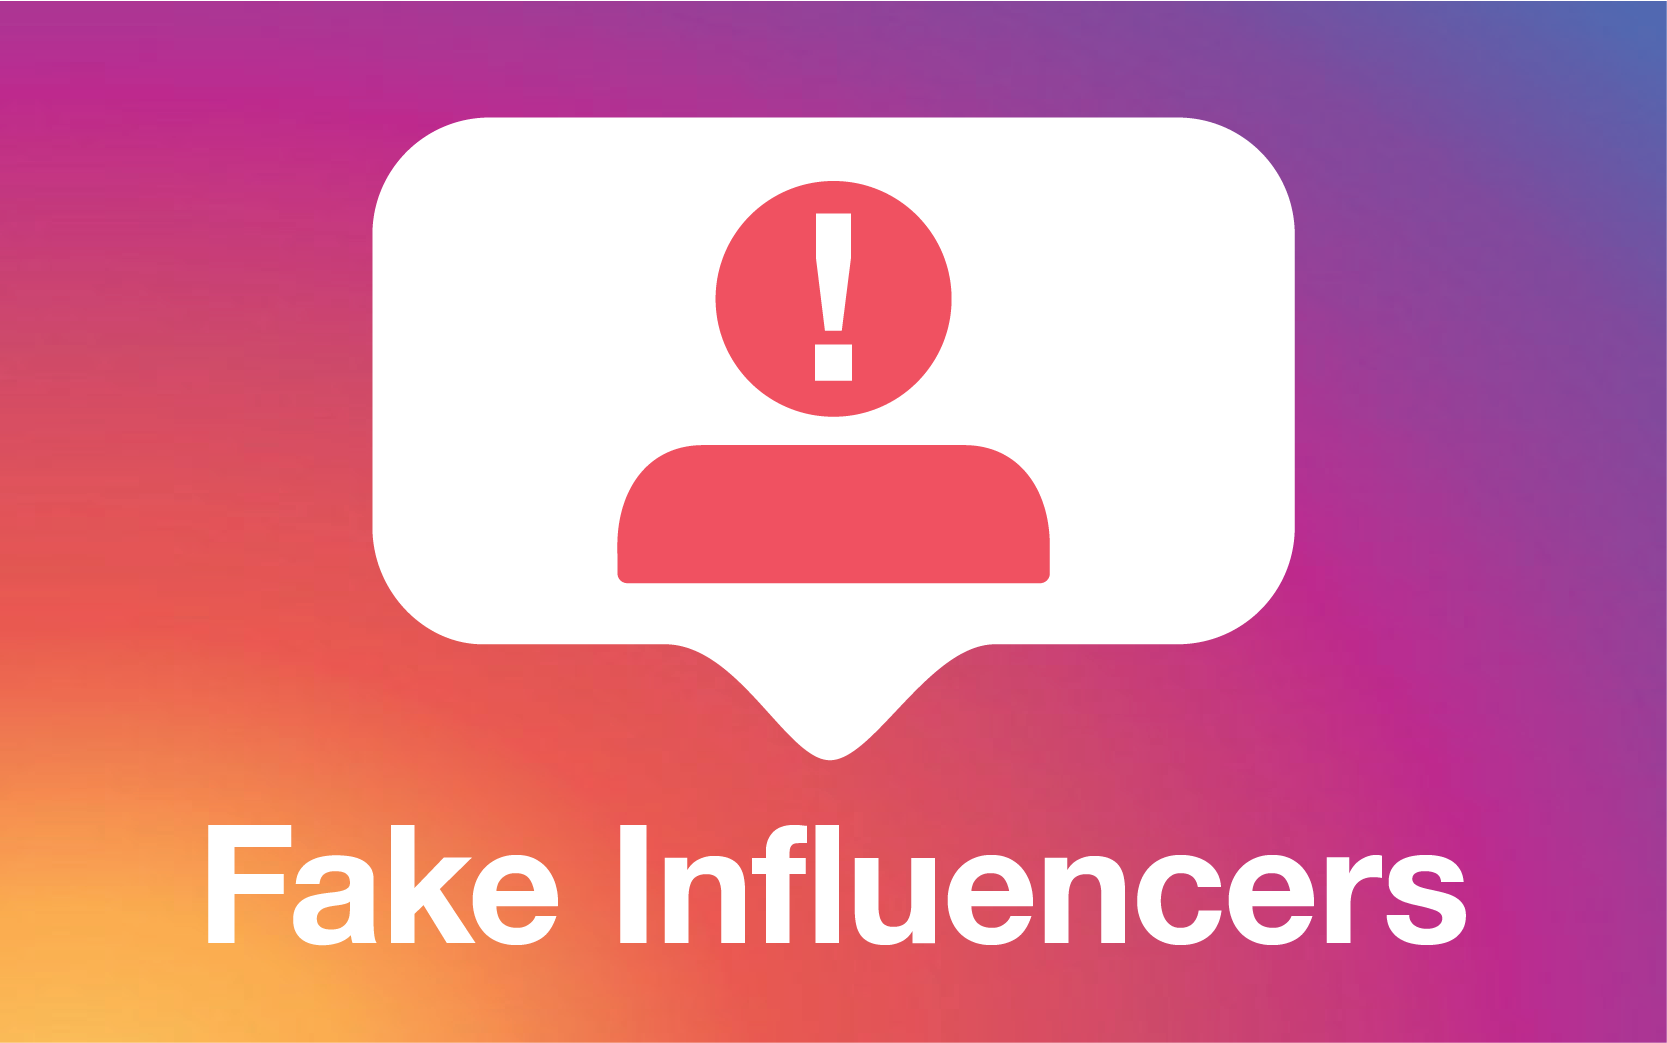 """Brands: How to fight """"Fake Influencers"""" on Instagram"""